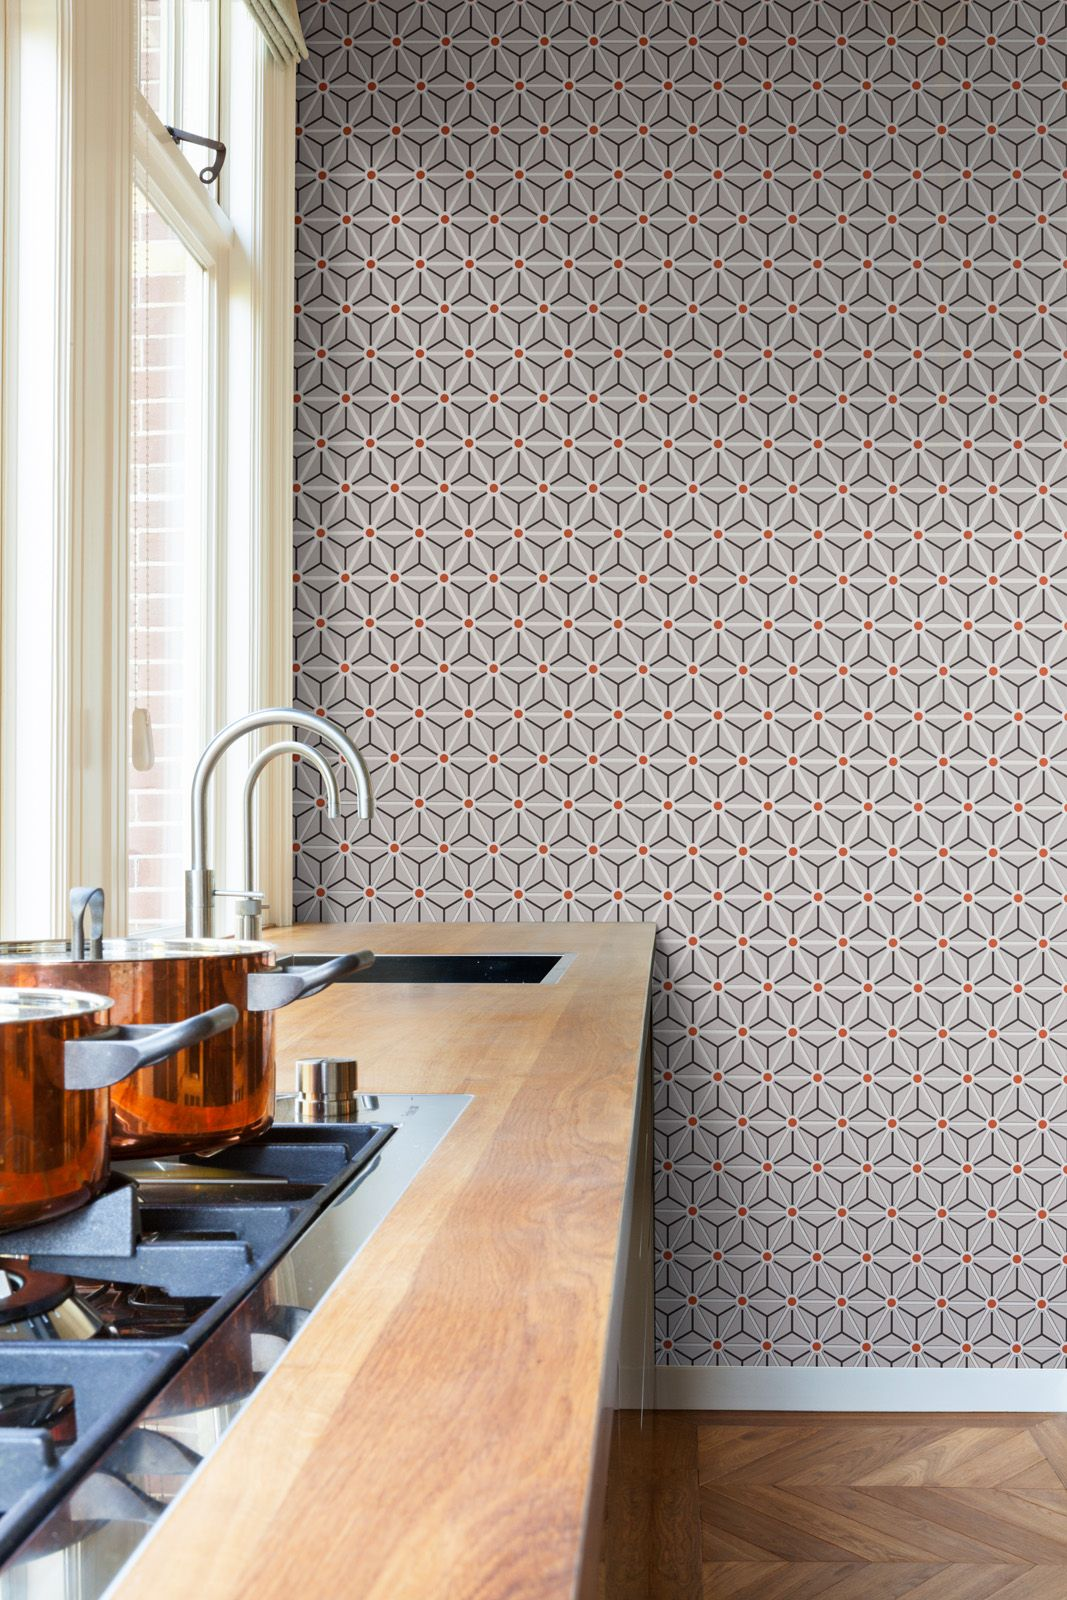 Modern Wallpaper For Kitchen Wallpaper Behang Layers By Edward Van Vliet Bn Wallcoverings